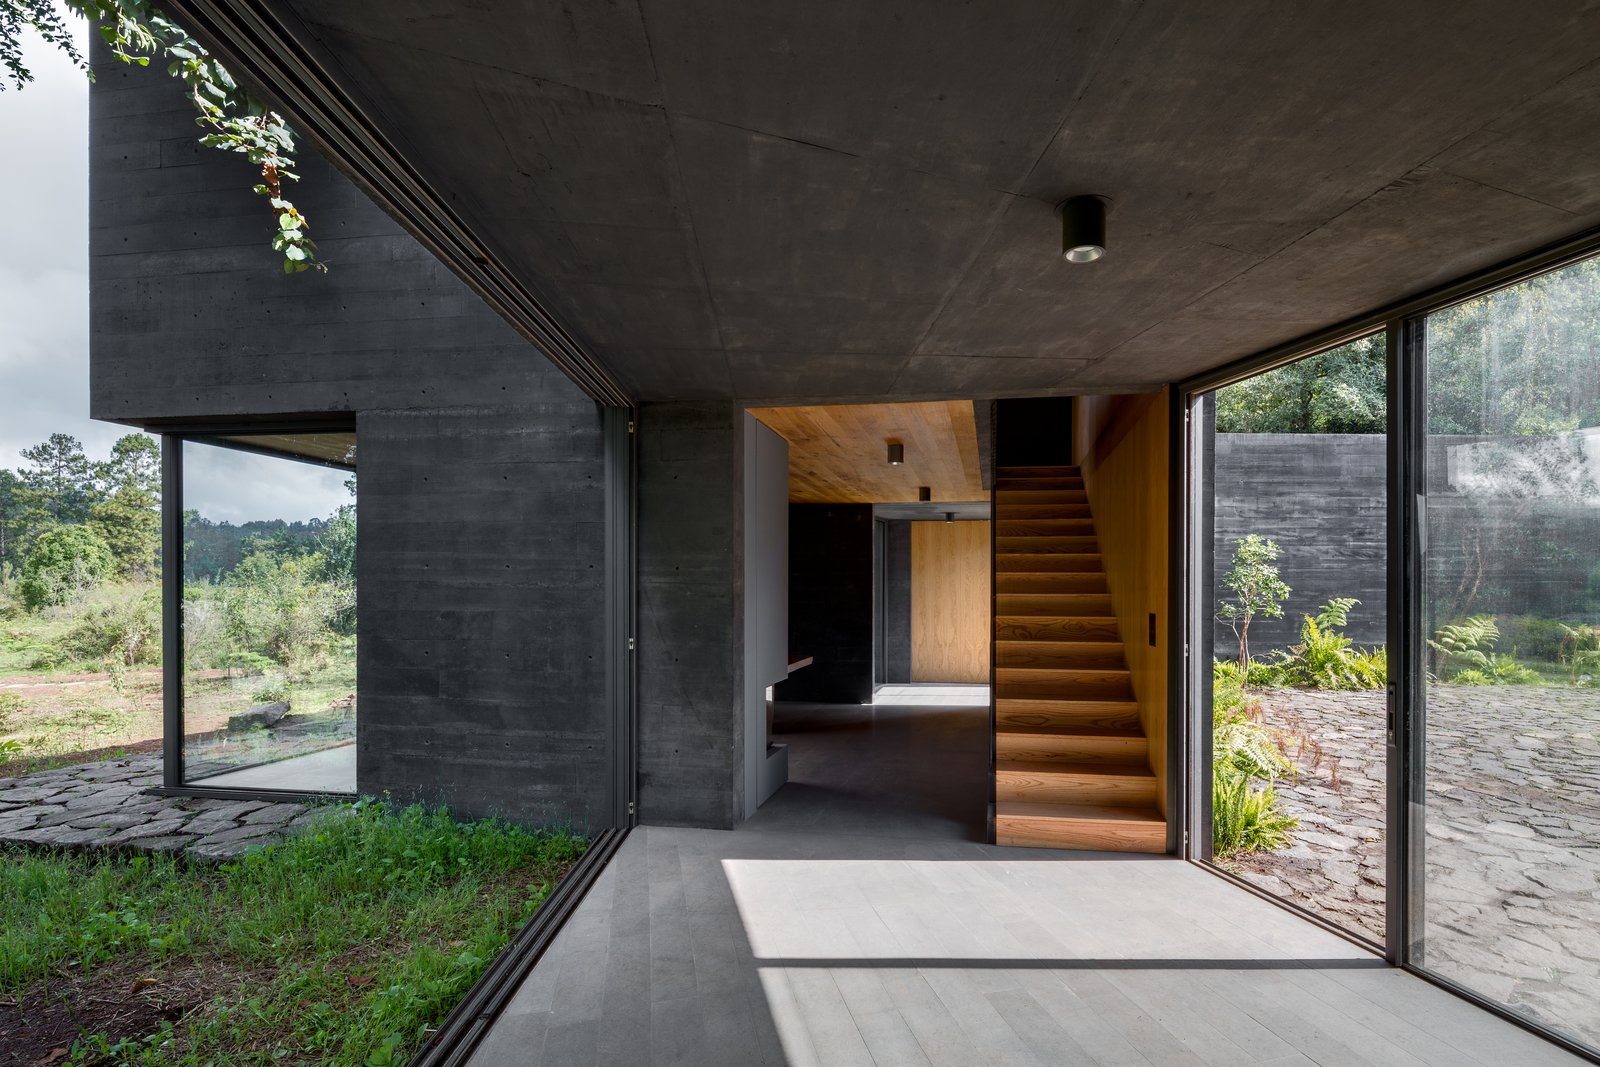 Staircase and Wood Tread The design allows each volume to assert its independence while interacting with the other buildings in a rhythmic sequence.  Best Photos from Nine Black Concrete Volumes Form This Mexican Retreat